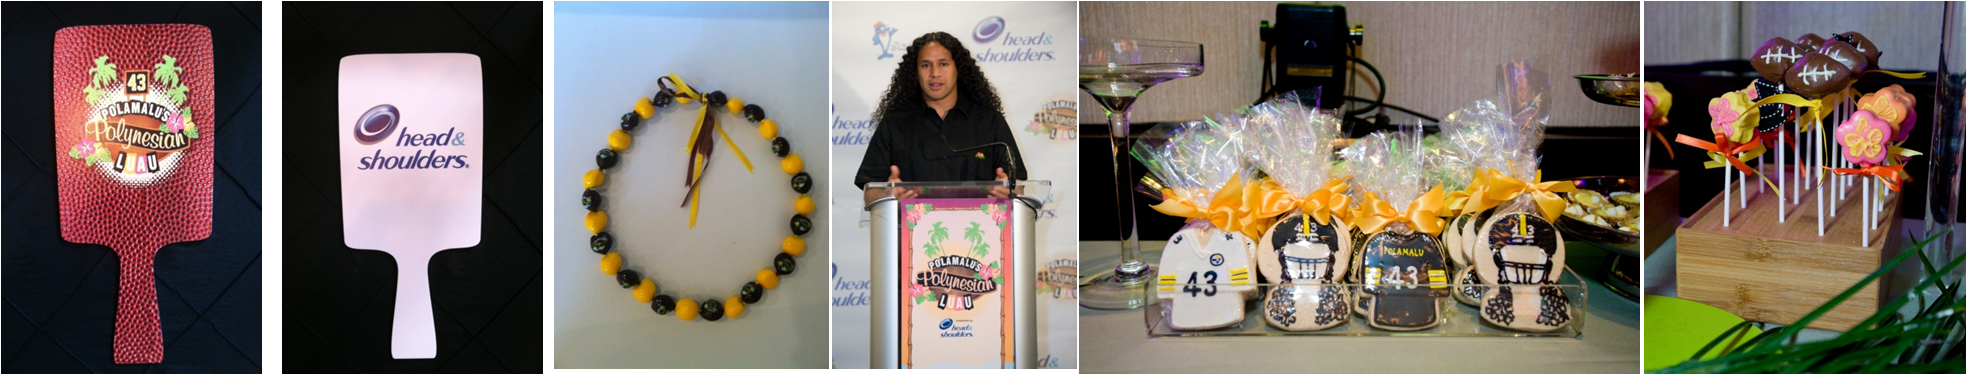 troy polamalu event branding pittsburgh steelers 43 black and yellow football polynesian luau 2012 2013